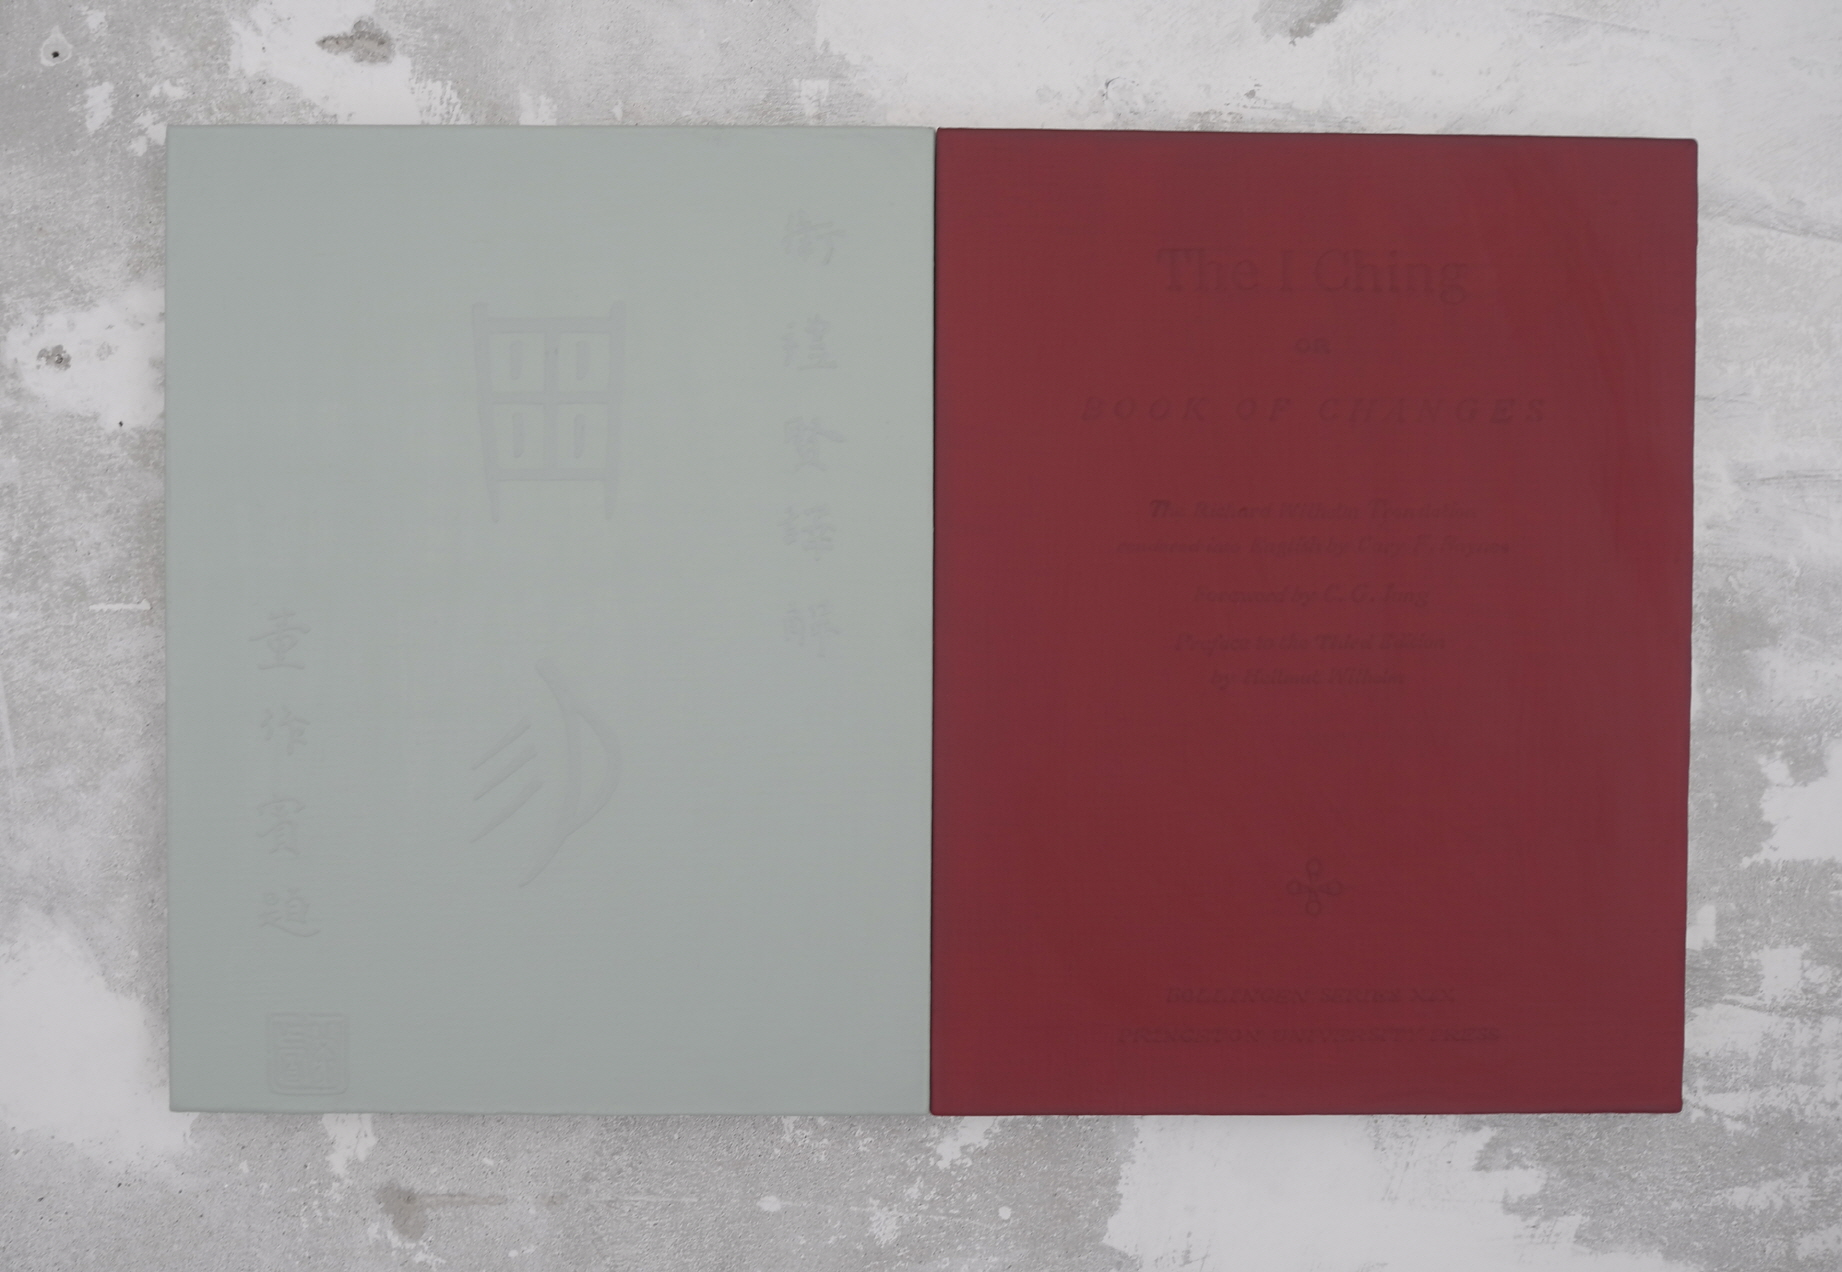 Simon Morley 'The I Ching' (1968) 2012 acrylic on canvas 53x83cm